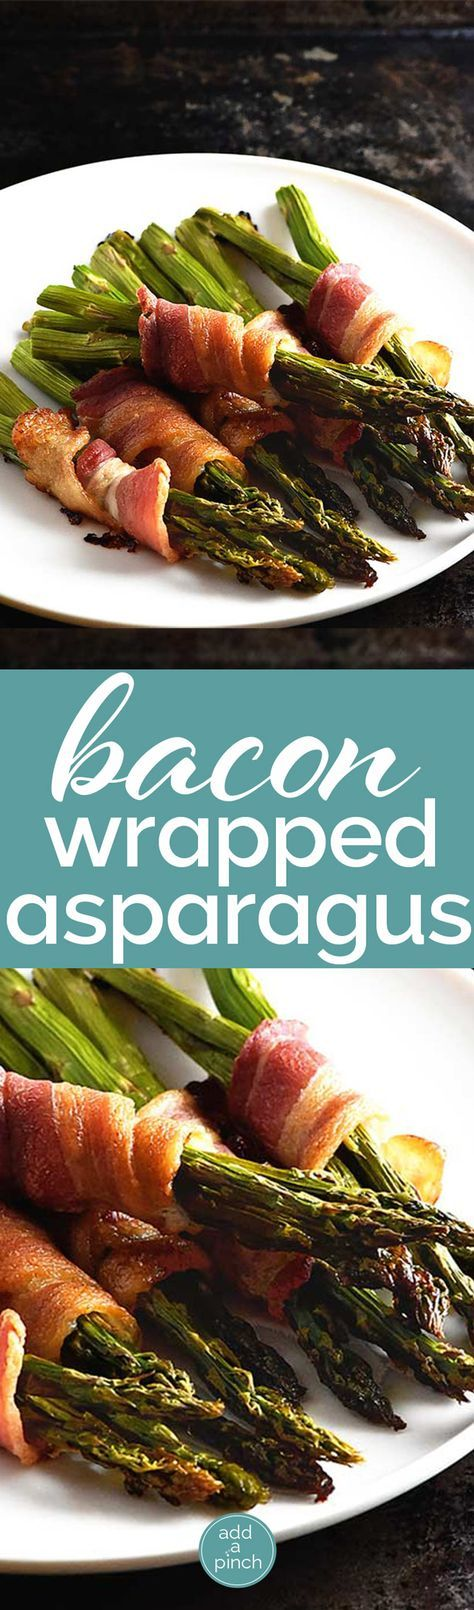 Bacon wrapped asparagus makes a delicious side dish. On the table in less than 30 minutes, this makes an easy and elegant asparagus recipe perfect for entertaining.